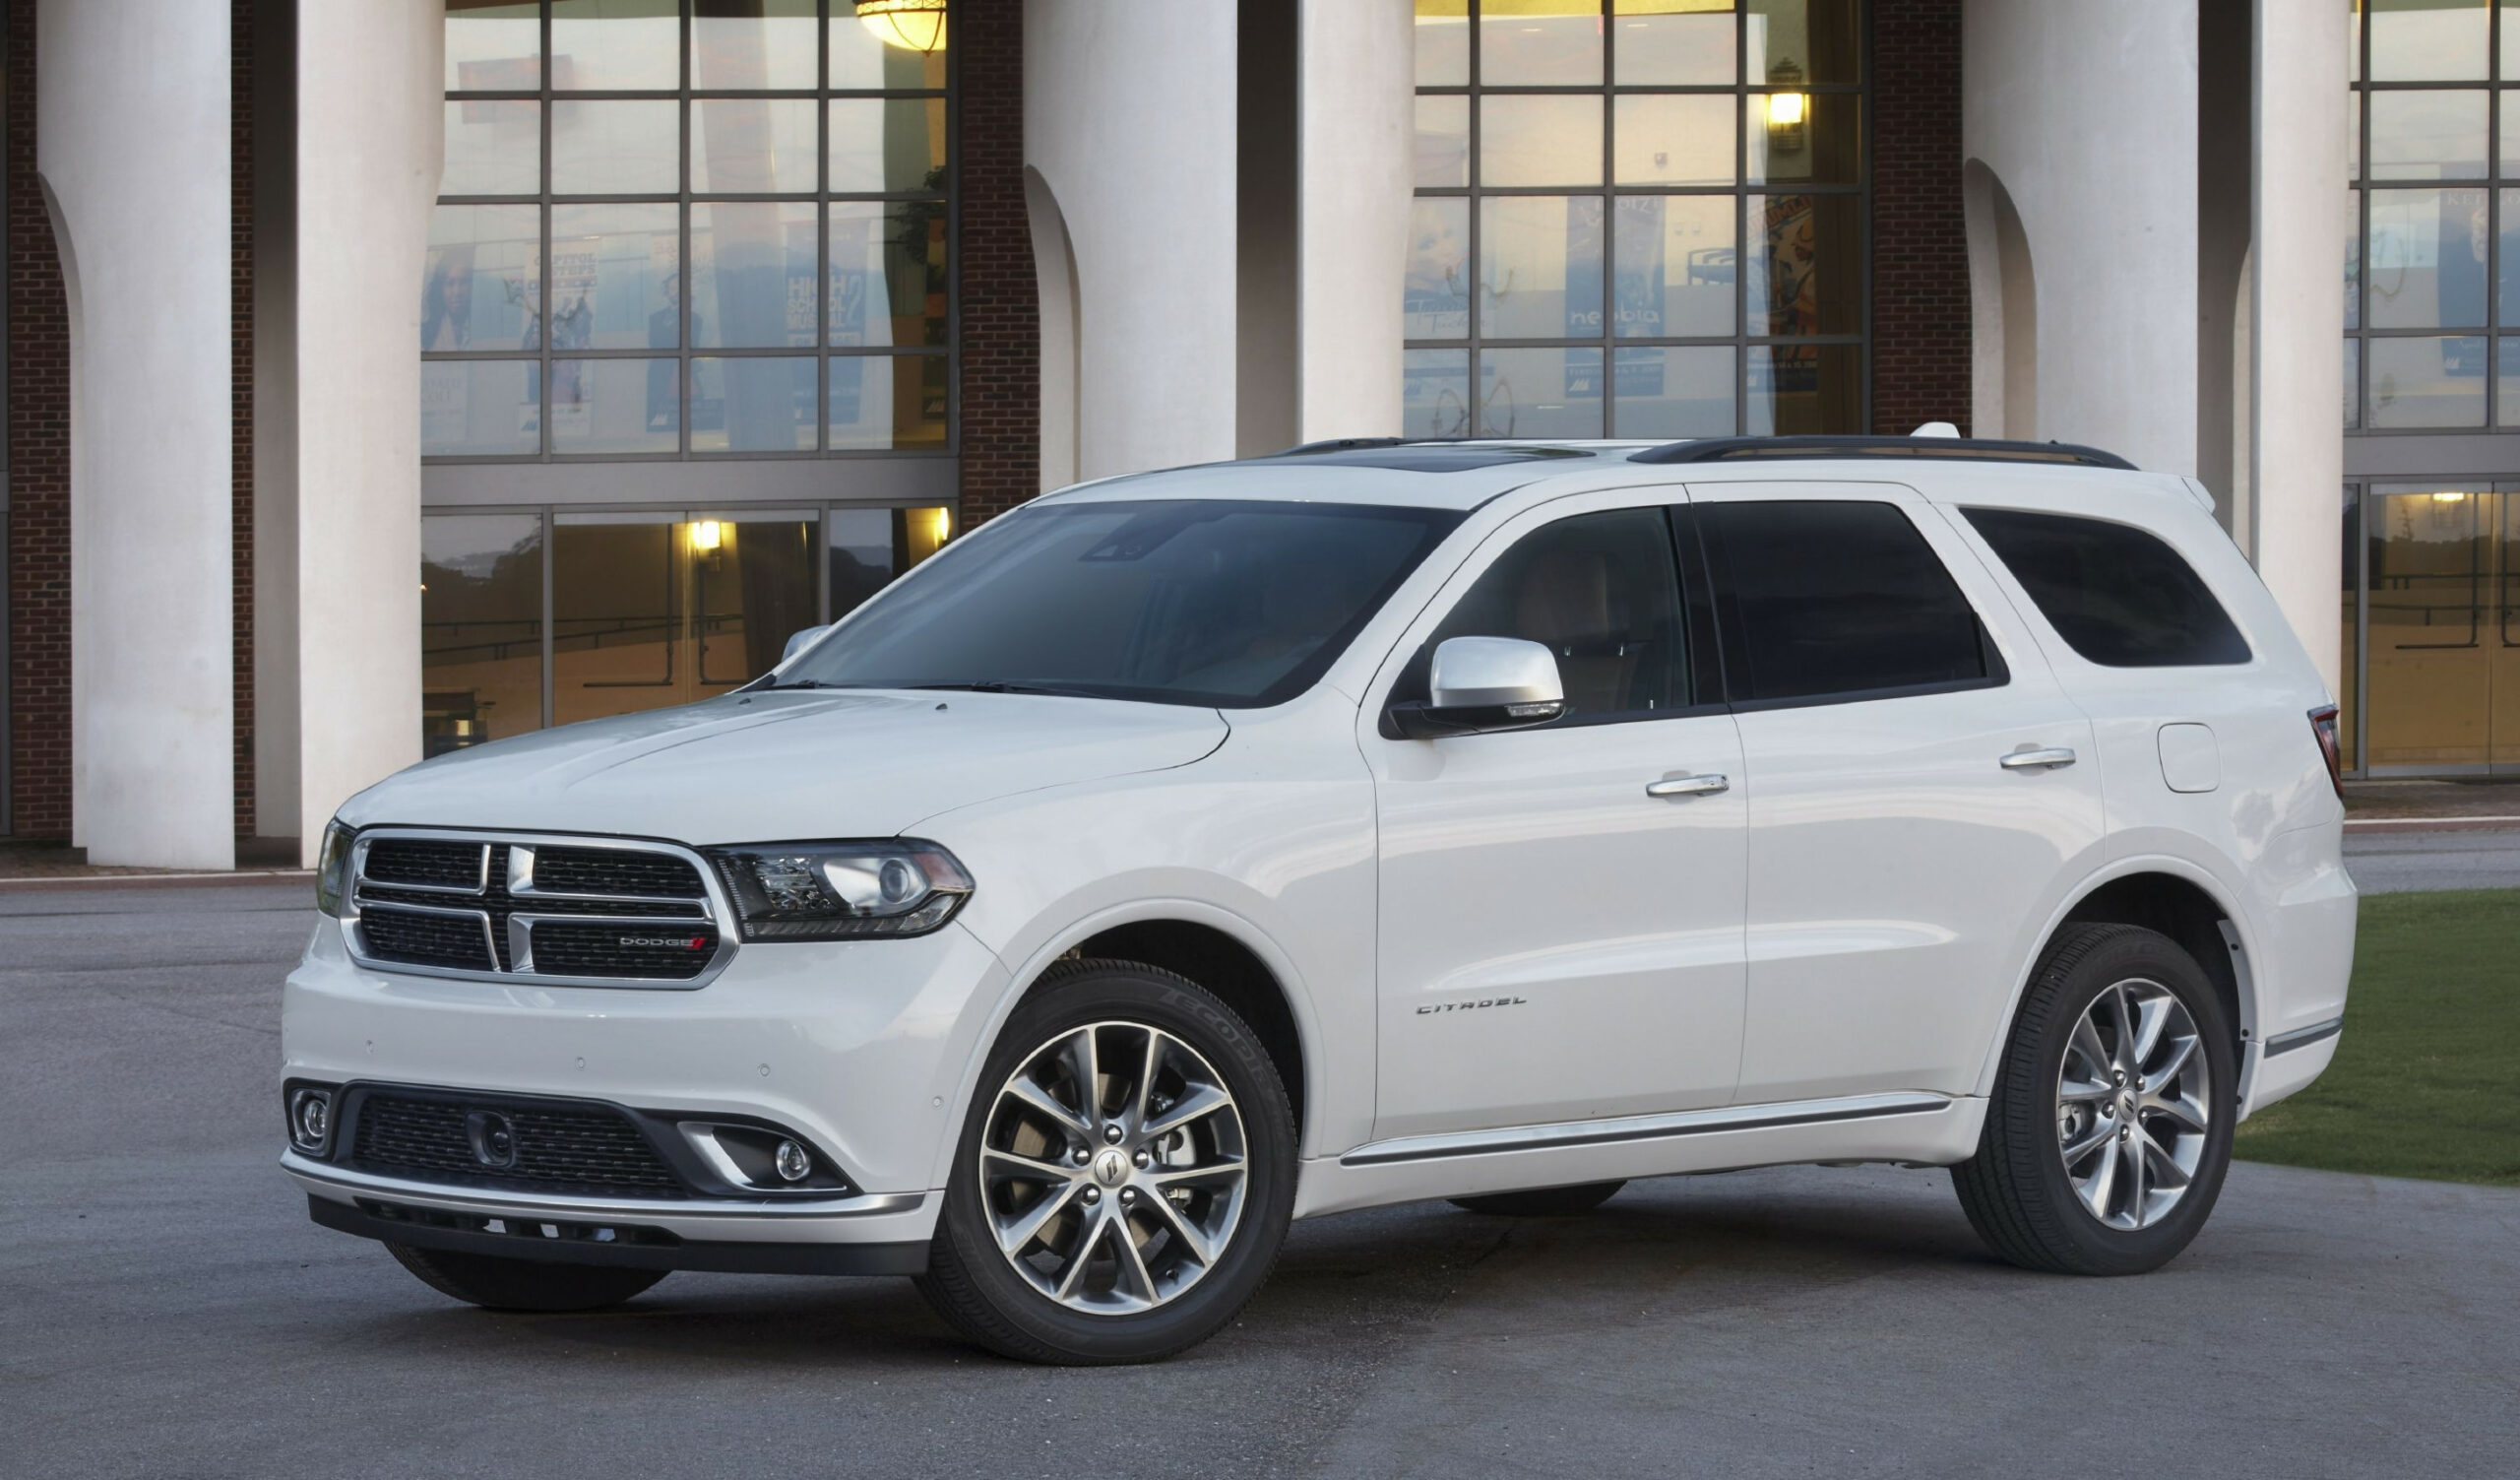 8 Dodge Durango Review, Pricing, and Specs - 2020 dodge full size suv